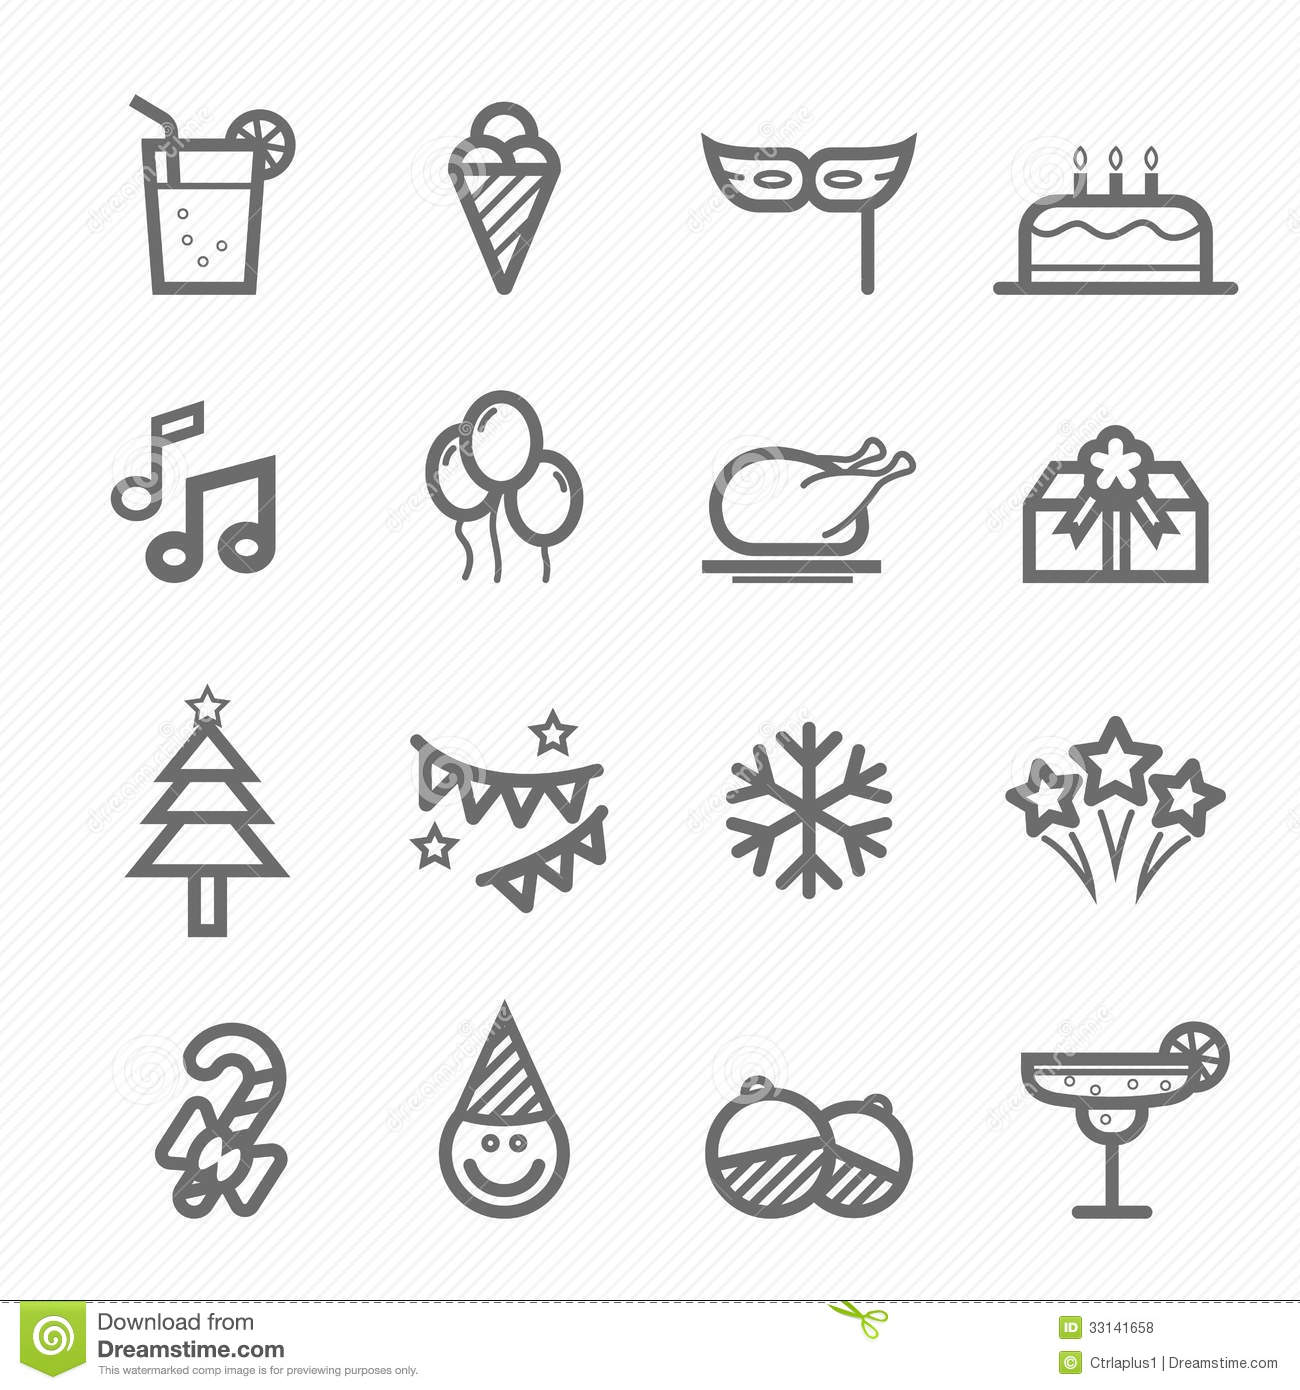 Pin Vector Of Battery Recycling Pictograms Set Cake On